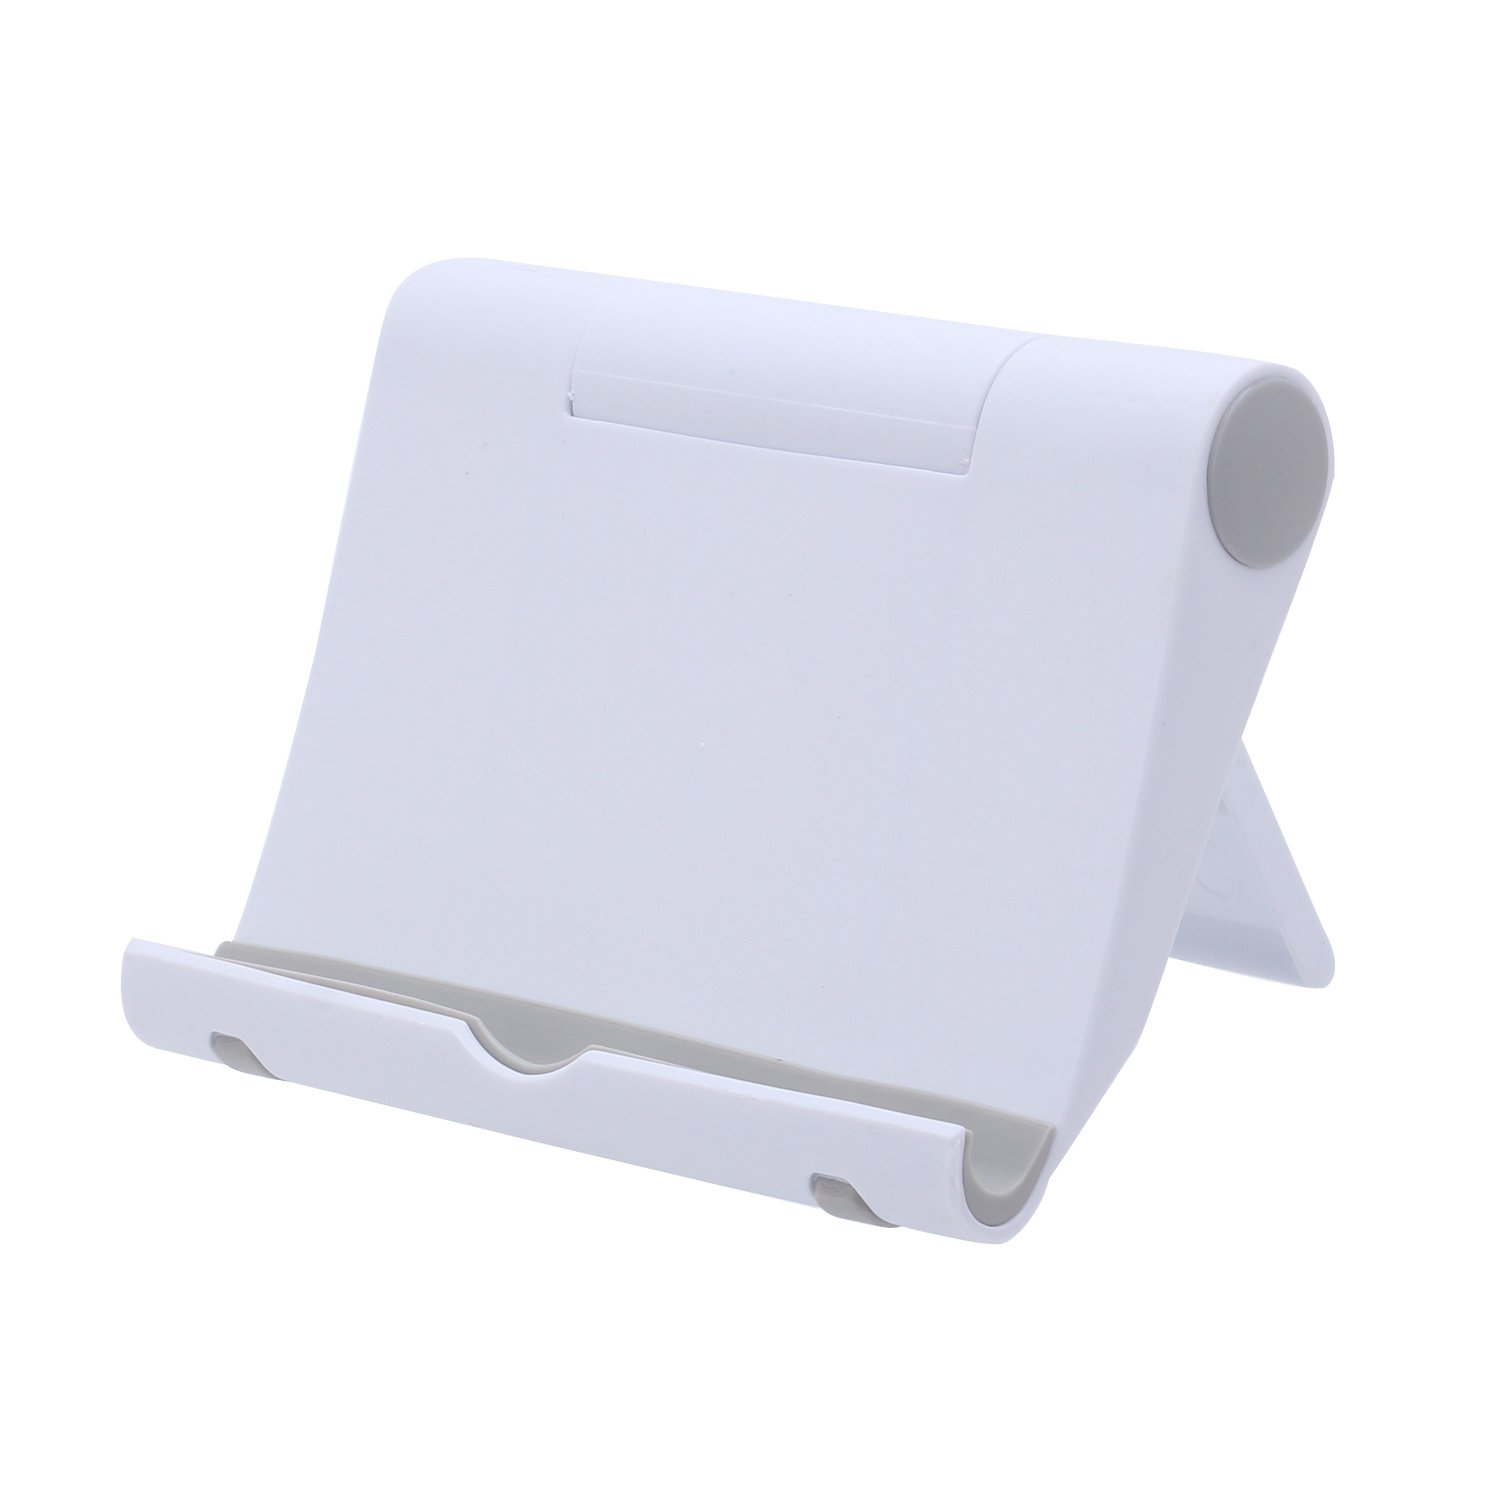 Merssavo Foldable Multi-angle Universal Cell Phone Desk Stand Holder For Tablet Mobile Phones 4-10 Inches White